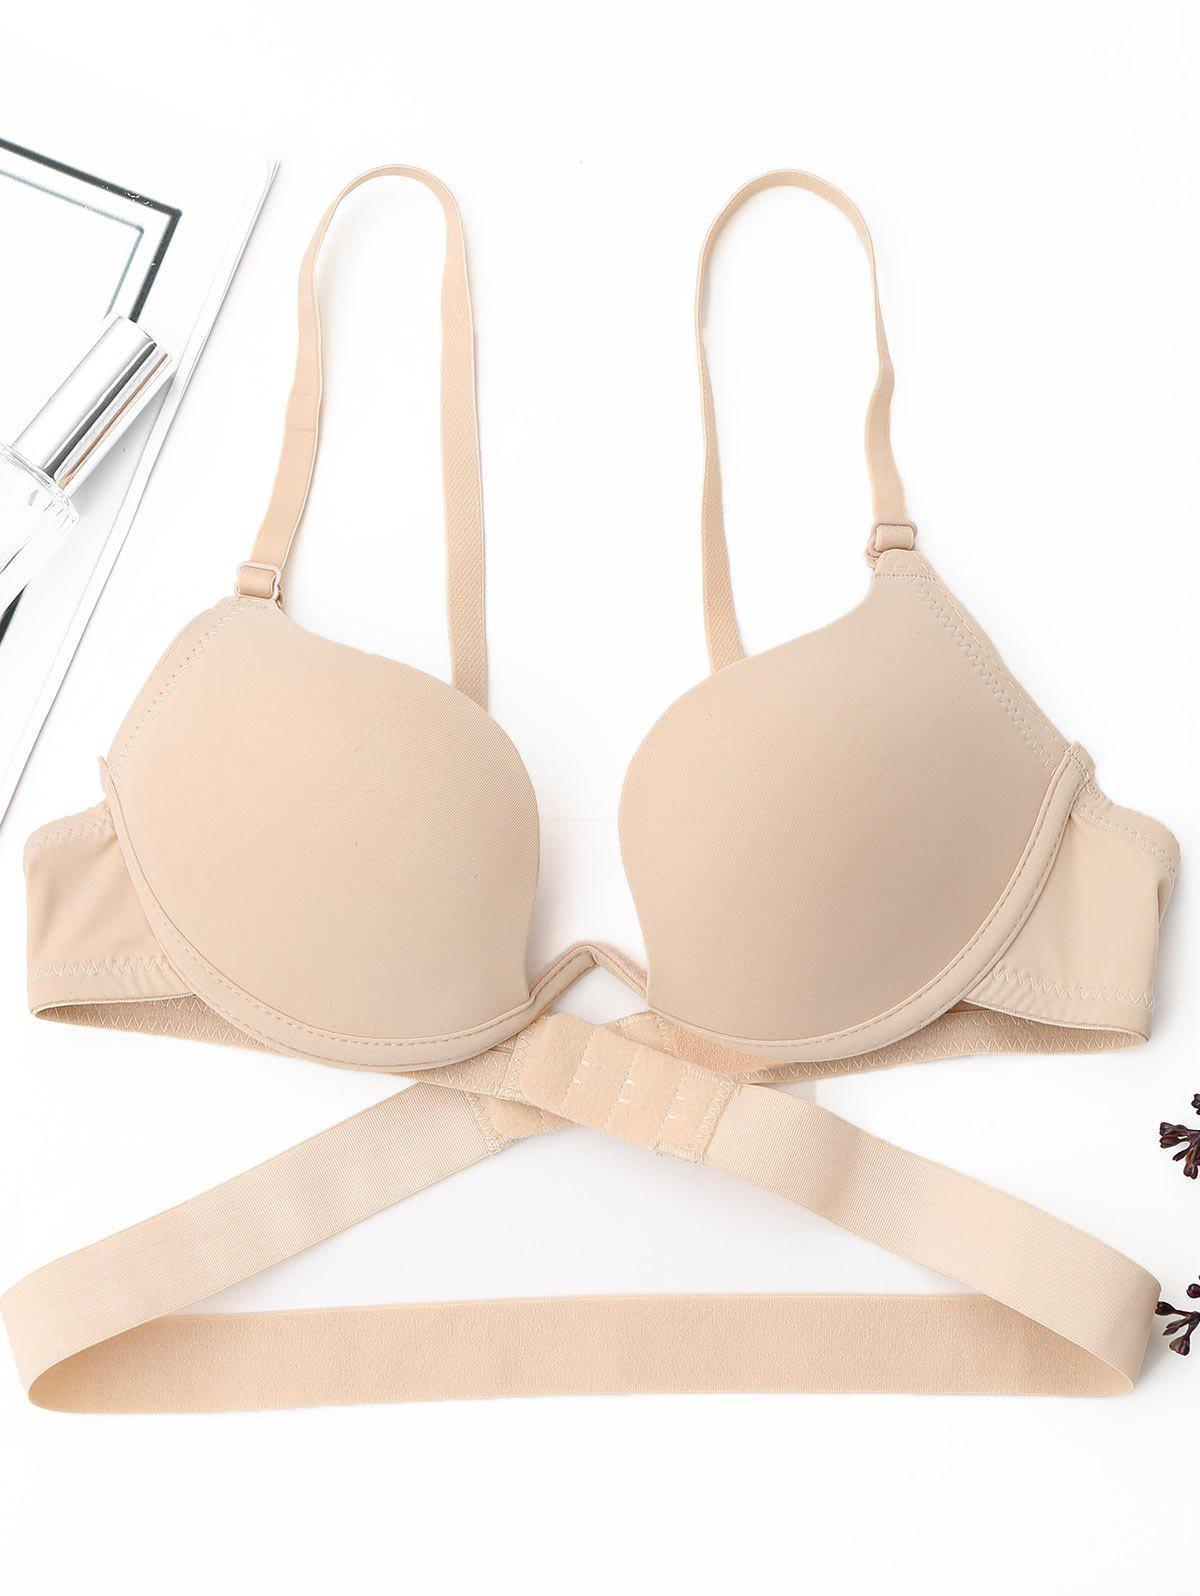 Padded Deep Plunge Wrap Bra - COMPLEXION 75B